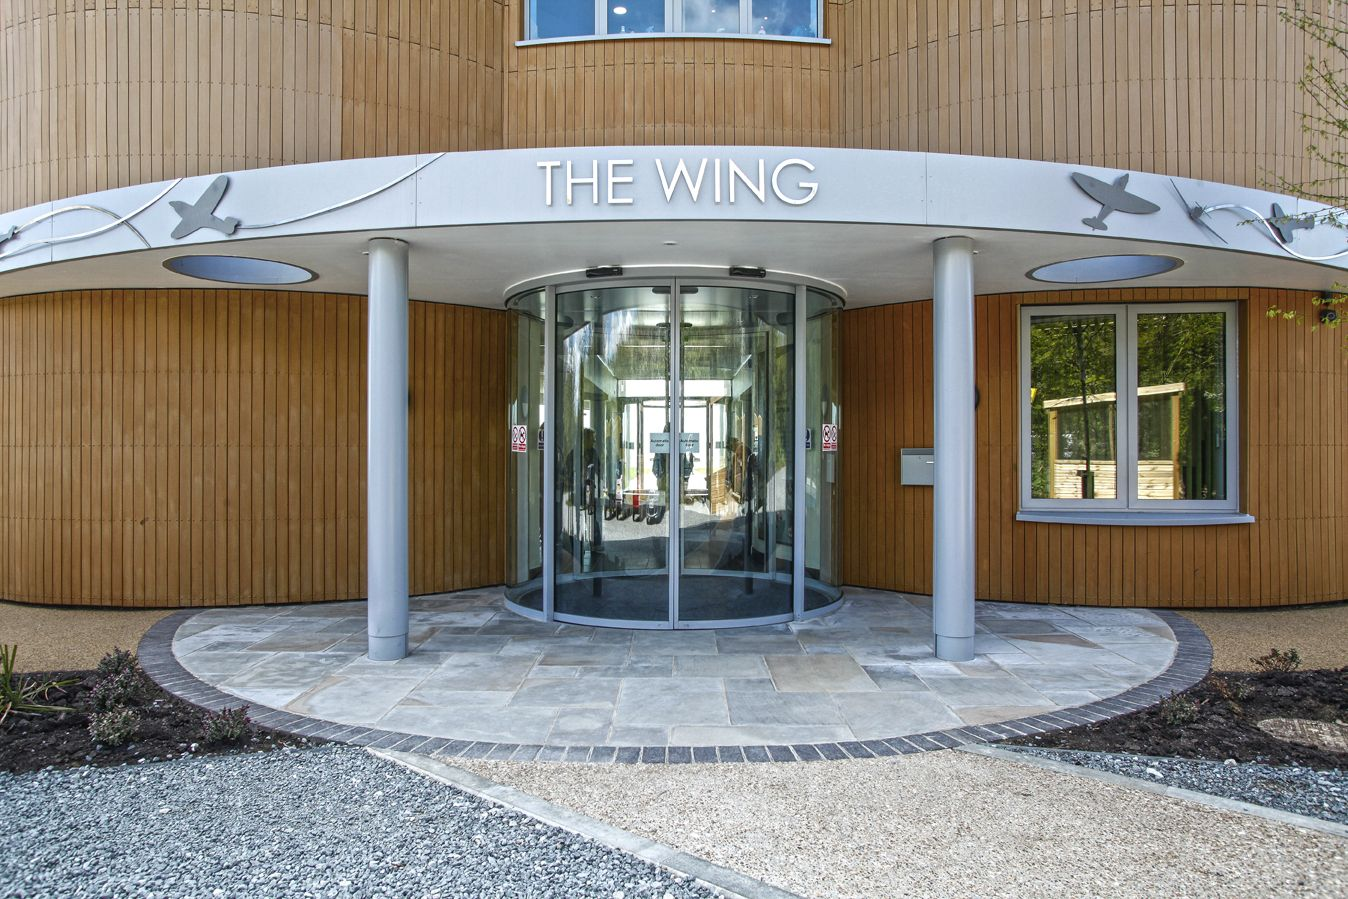 Casings designed & manufactured for the wing building at the National Memorial using skill and advanced CAD facilities  #education #wingmemorial